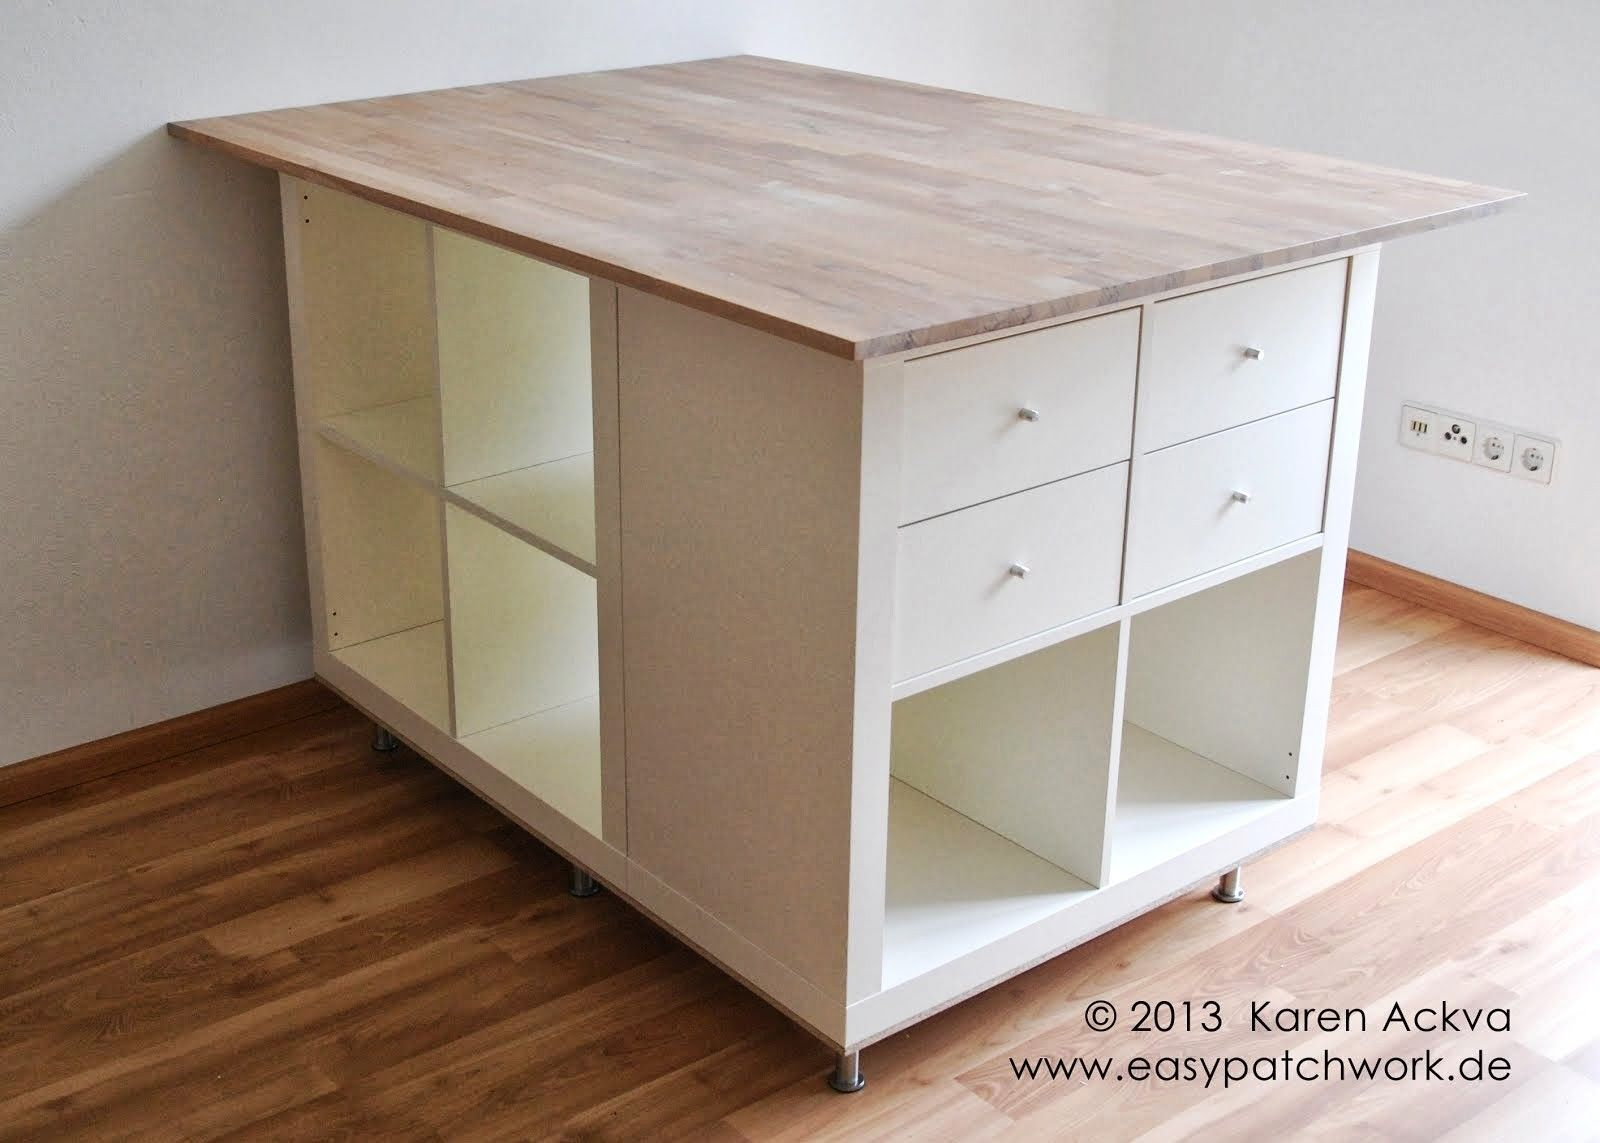 Ikea Kallax Expedit Cubes Become A Table Ikea Craft Room Sewing Room Inspiration Ikea Crafts